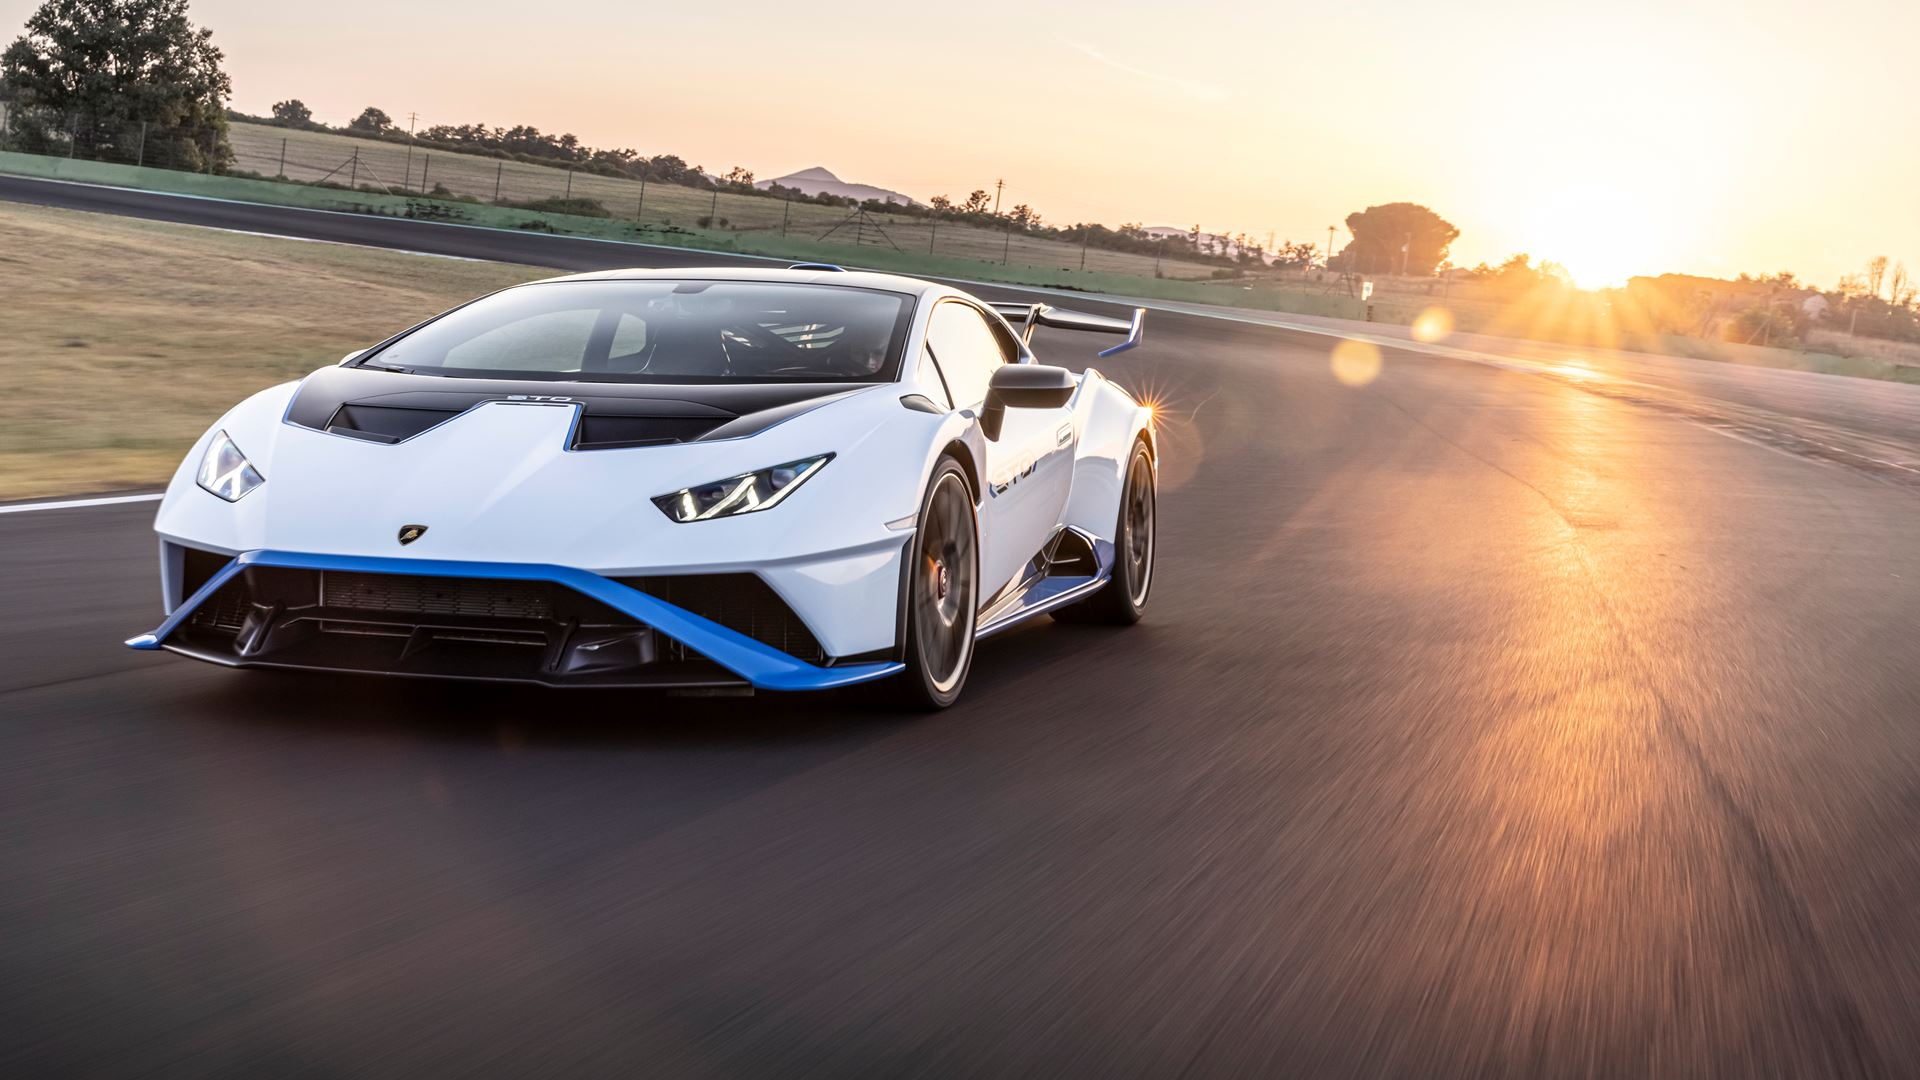 Lamborghini Huracán STO finally unleashed First test-drives in Rome and at the Autodromo Piero Taruffi in Vallelunga - Image 5